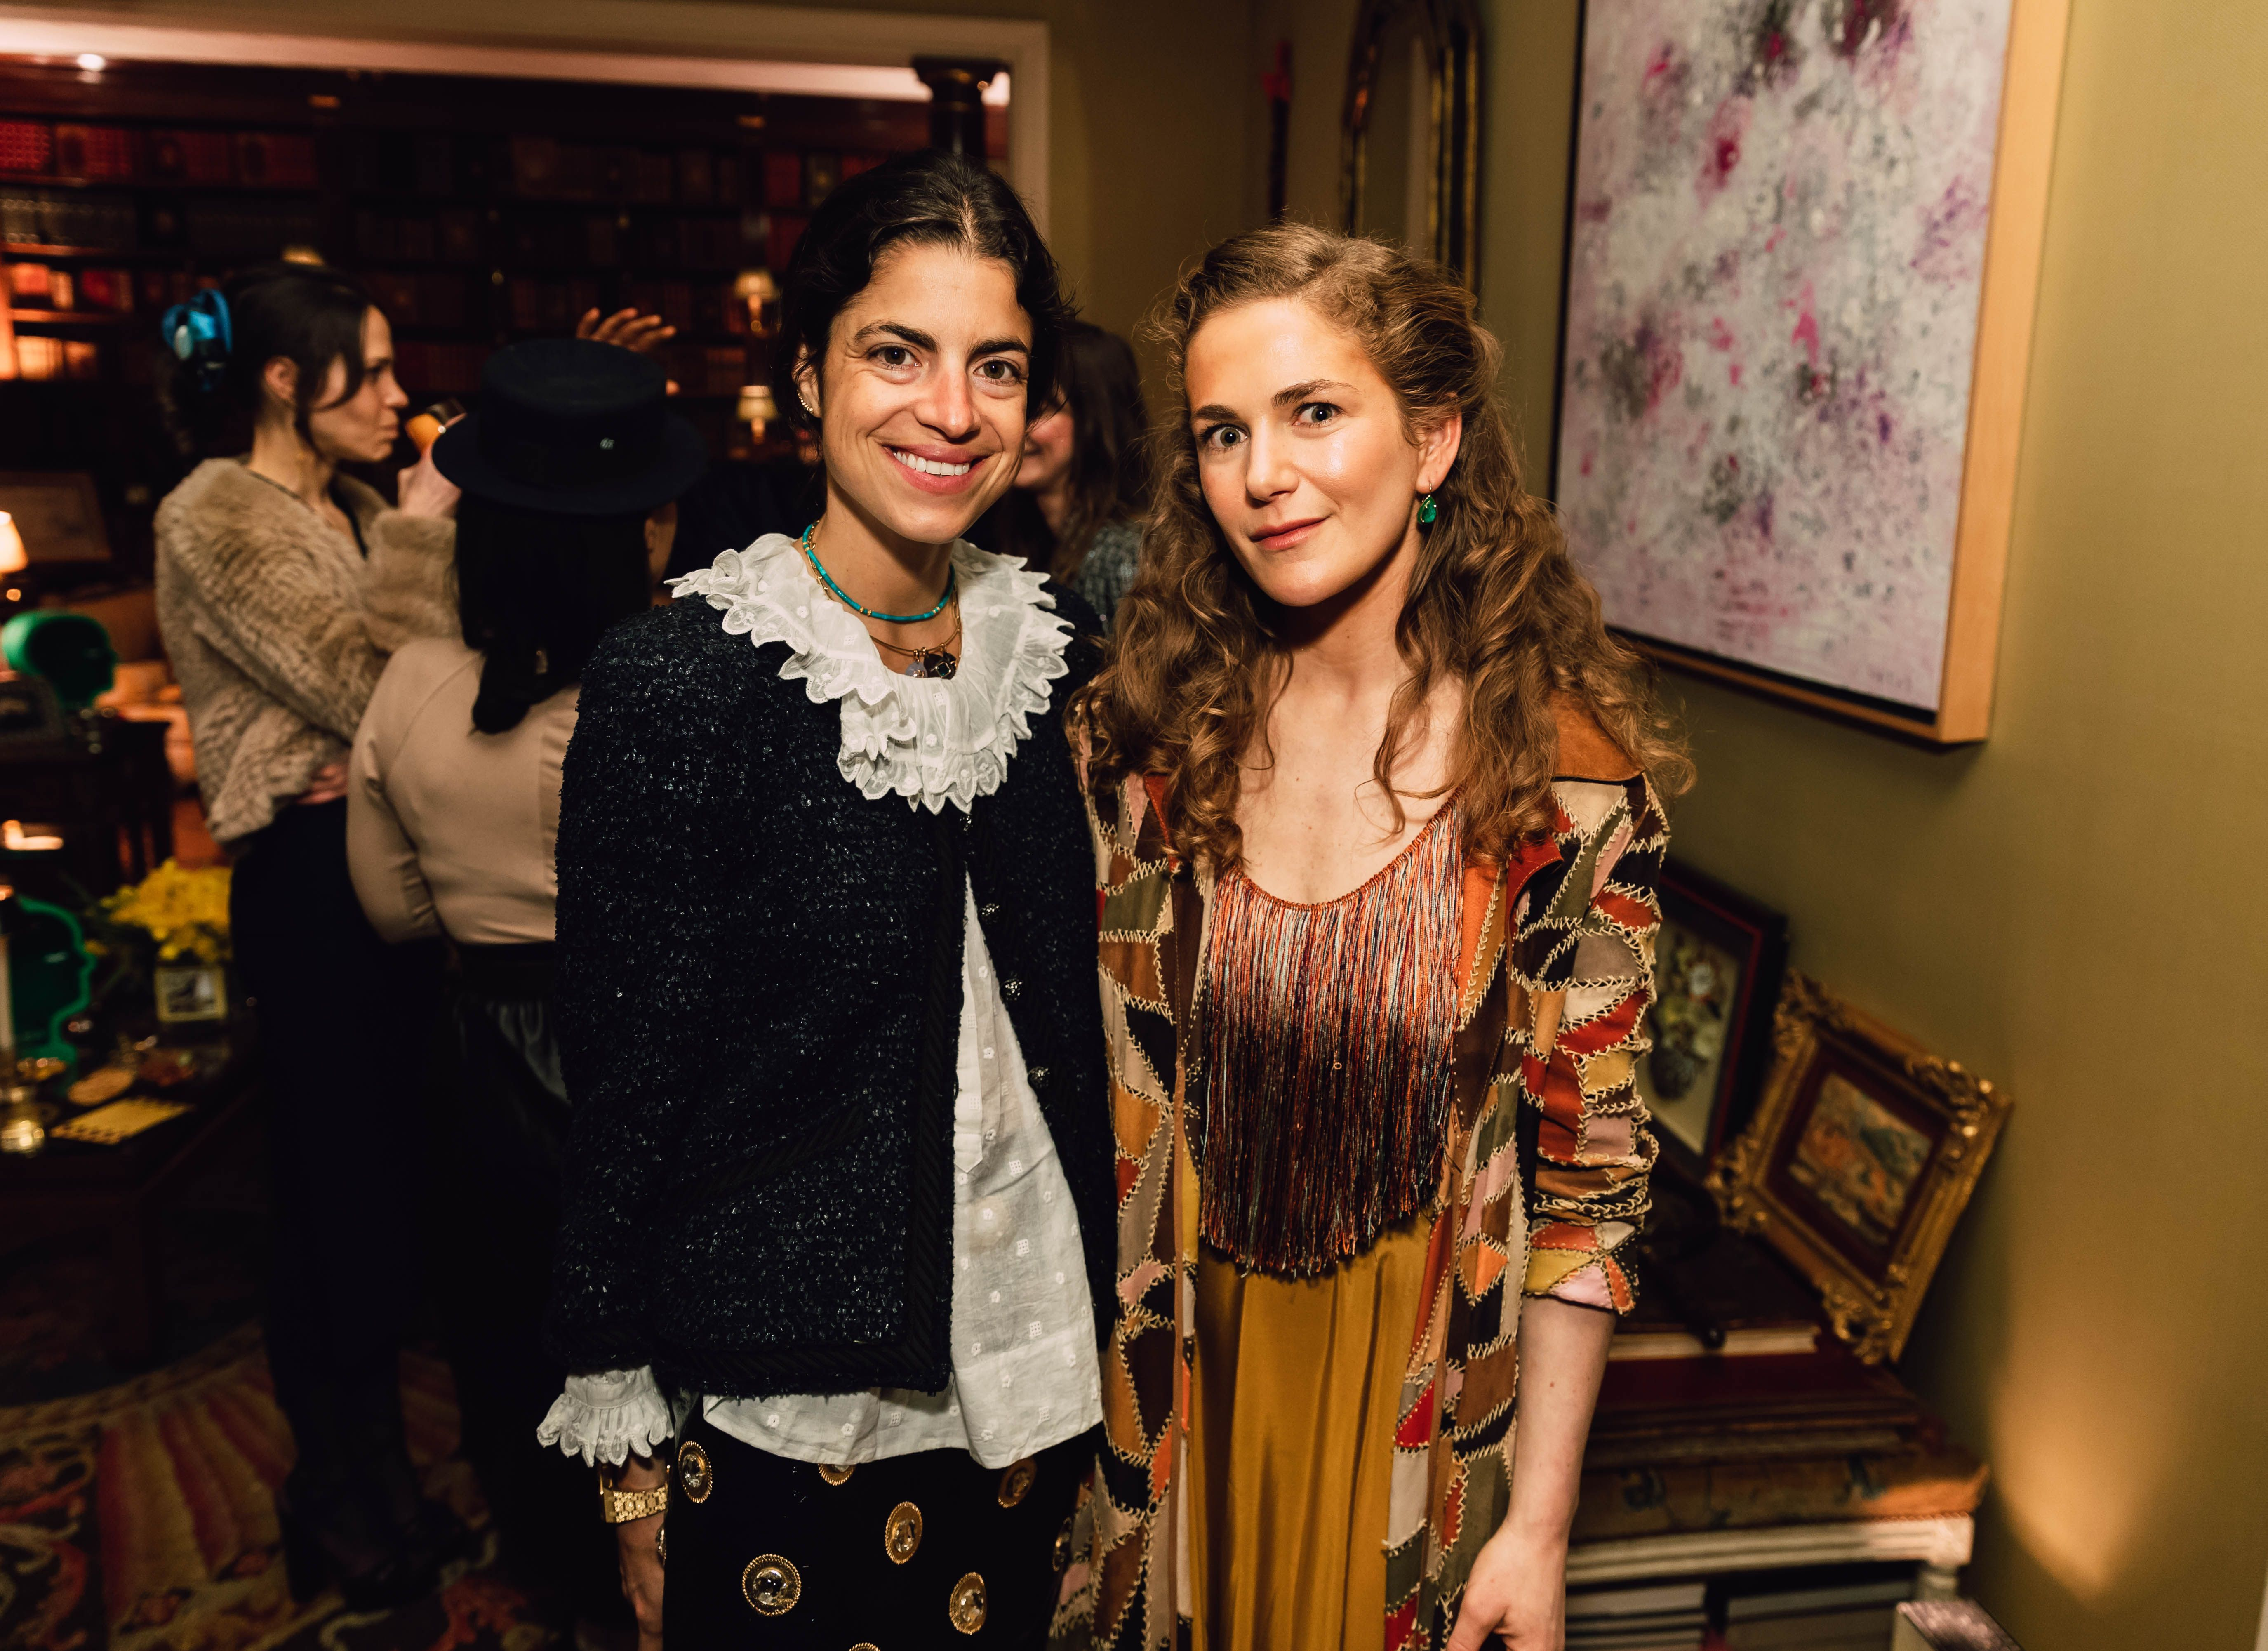 Leandra Medine Cohen and Claire Olshan Leandra Medine Cohen and Claire Olshan celebrate the launch of Claire Olshan's snack brand, Dada Daily in collaboration with StoryCourse on March 28.